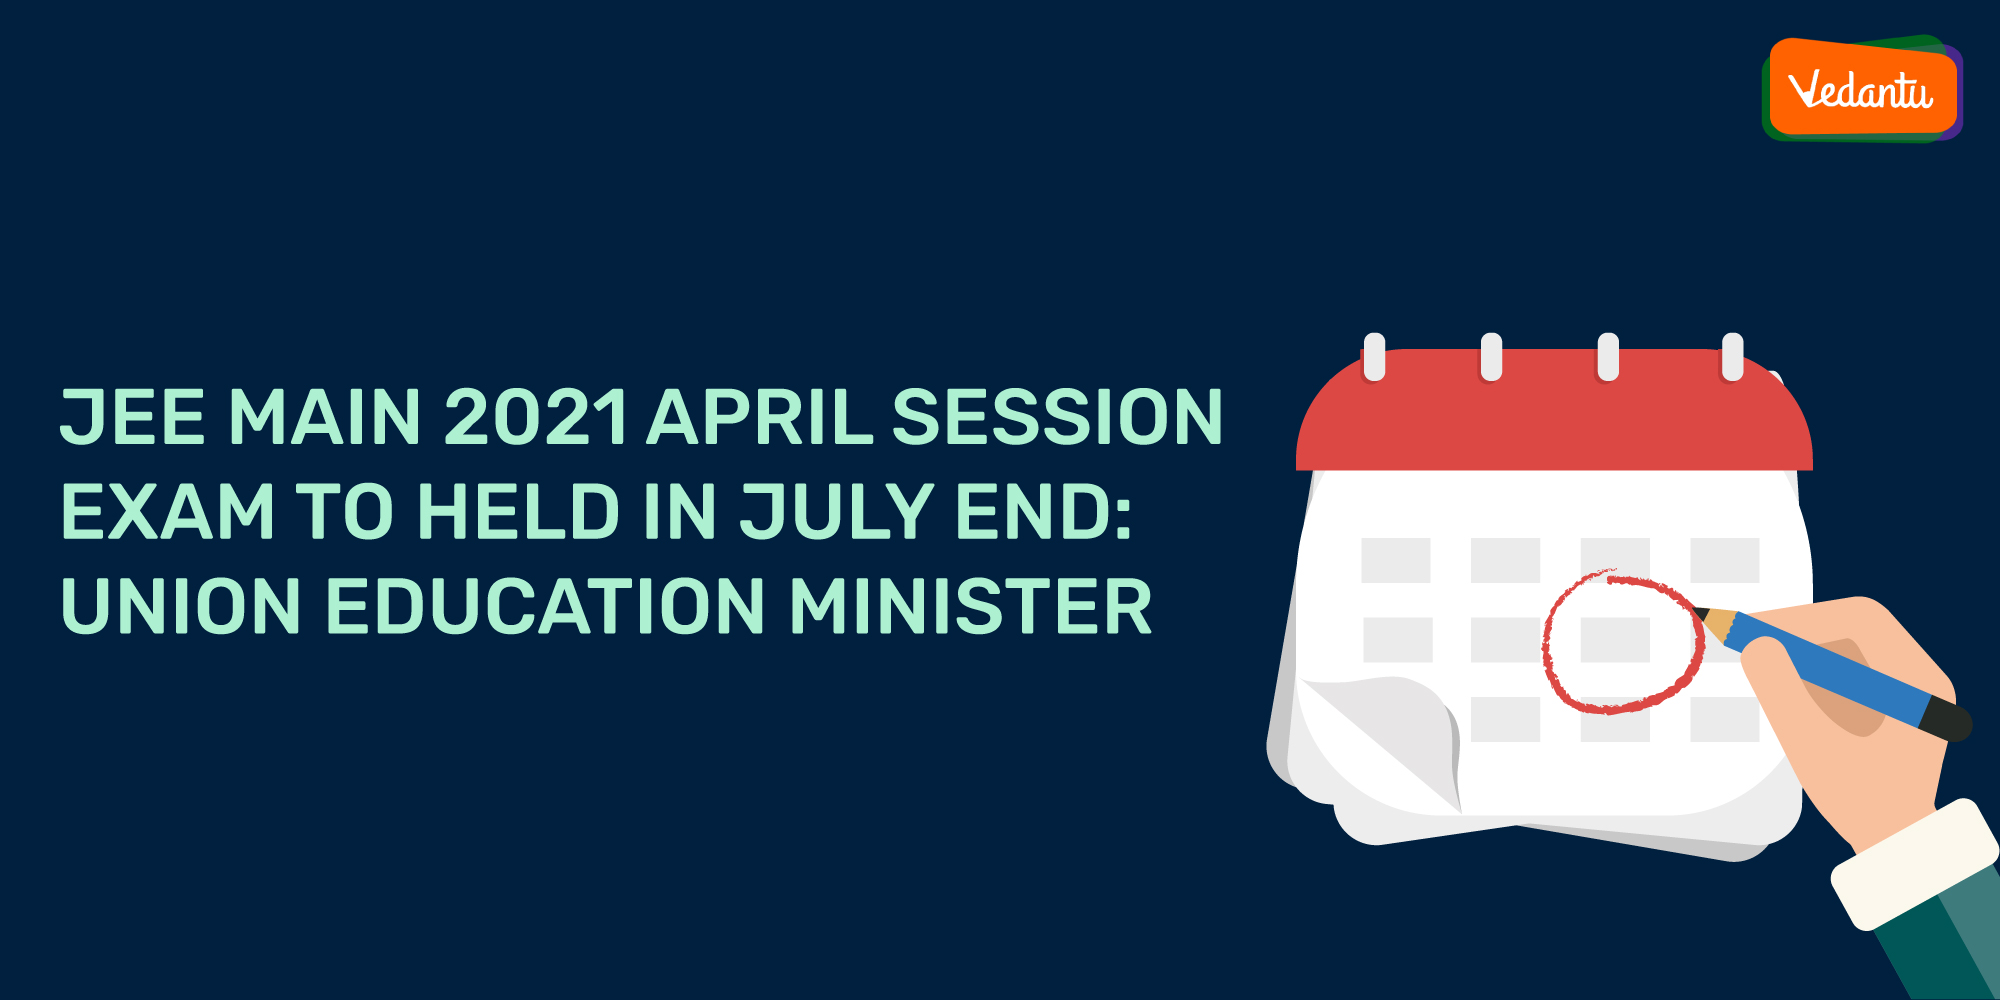 JEE Main 2021 April Session Exam To Held In July End: Union Education Minister